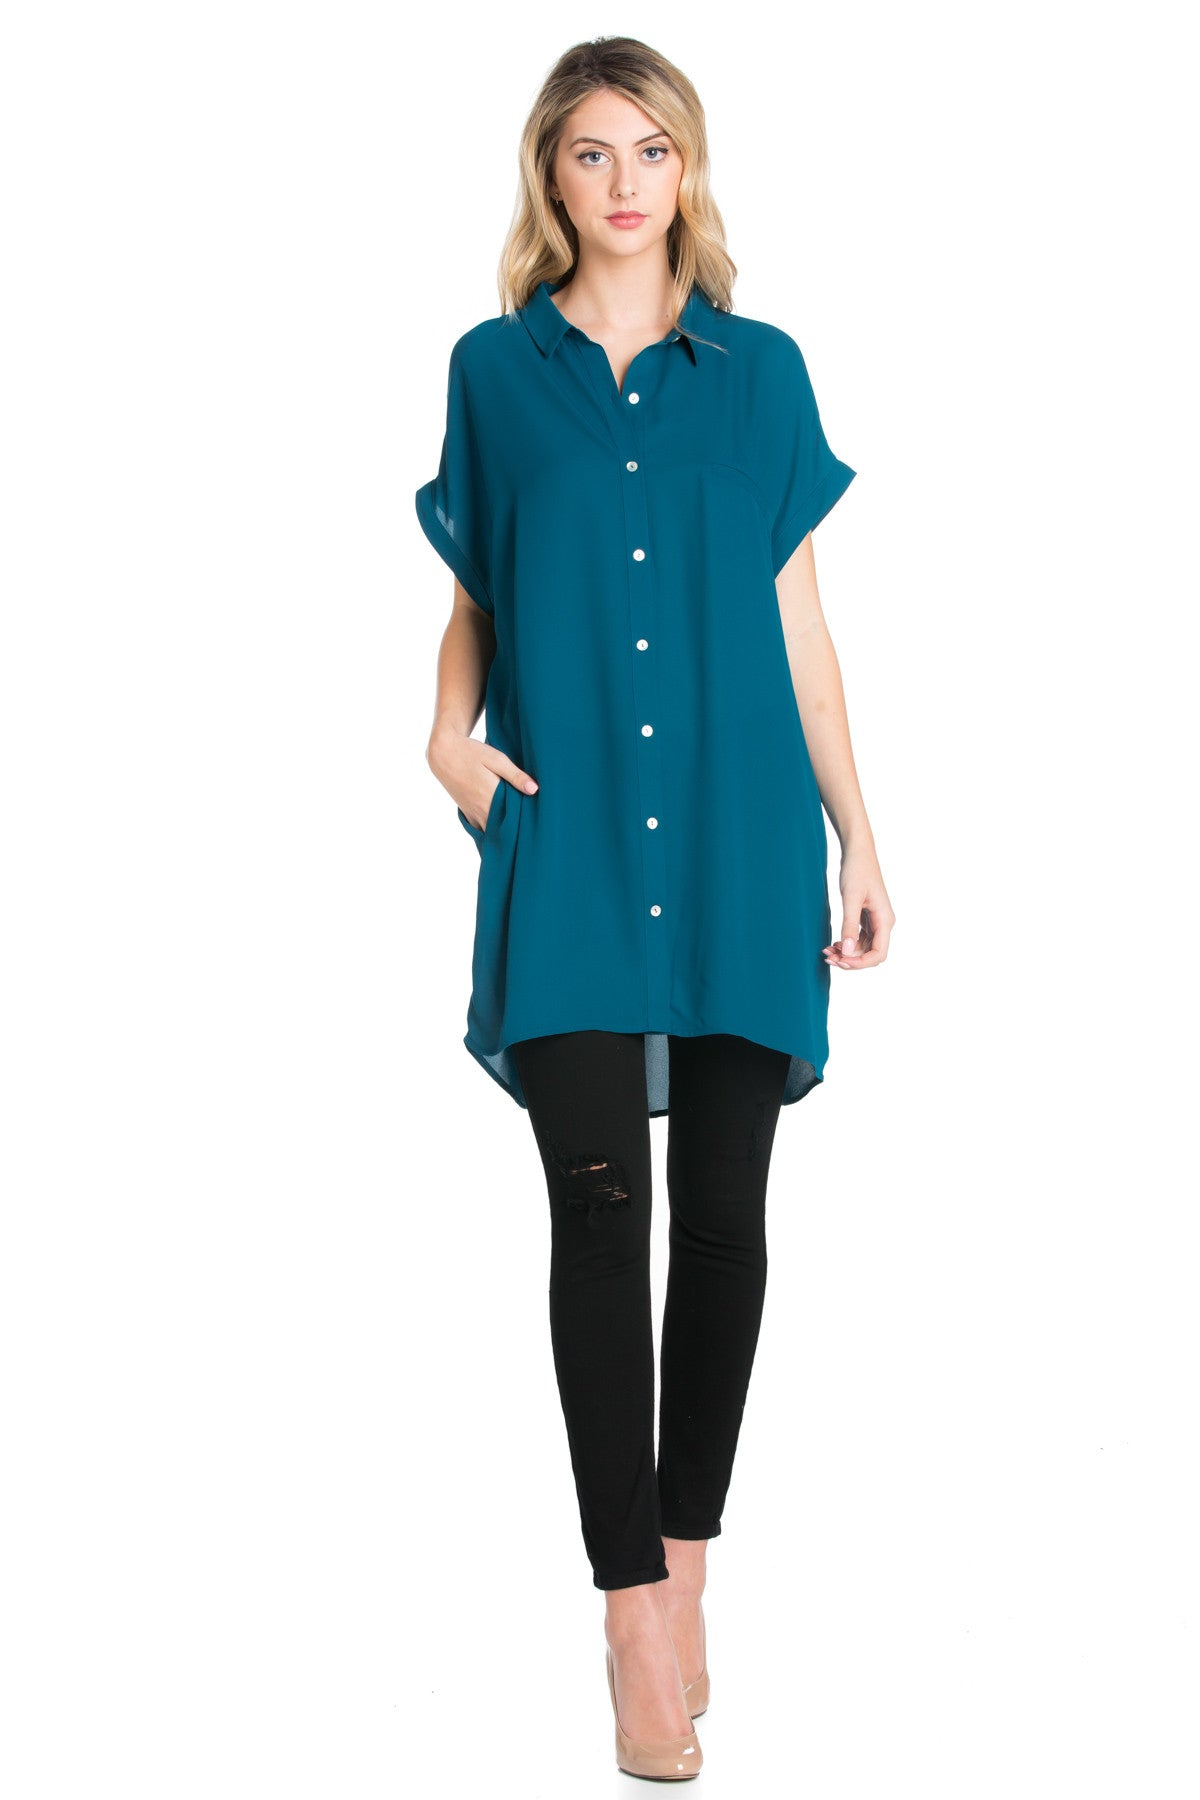 Short Sleeve Longline Button Down Chiffon Top in Teal - Tops - My Yuccie - 1